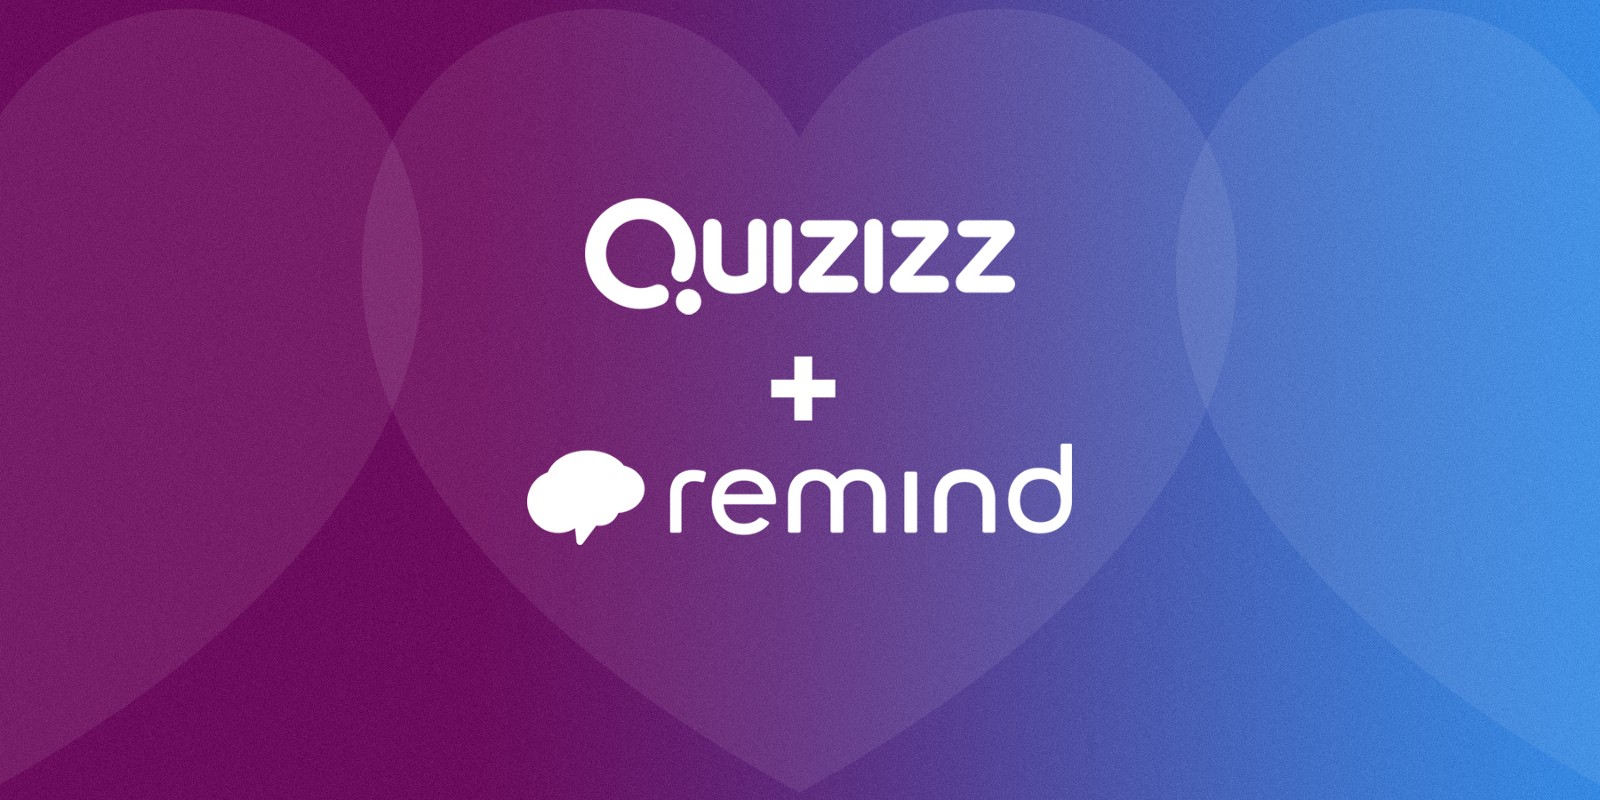 Now You Can Share The Joining Instructions With Your Class Through Remind.  Students Can Directly Join A Quizizz Game With A Link U2014 No Game Codes  Required!